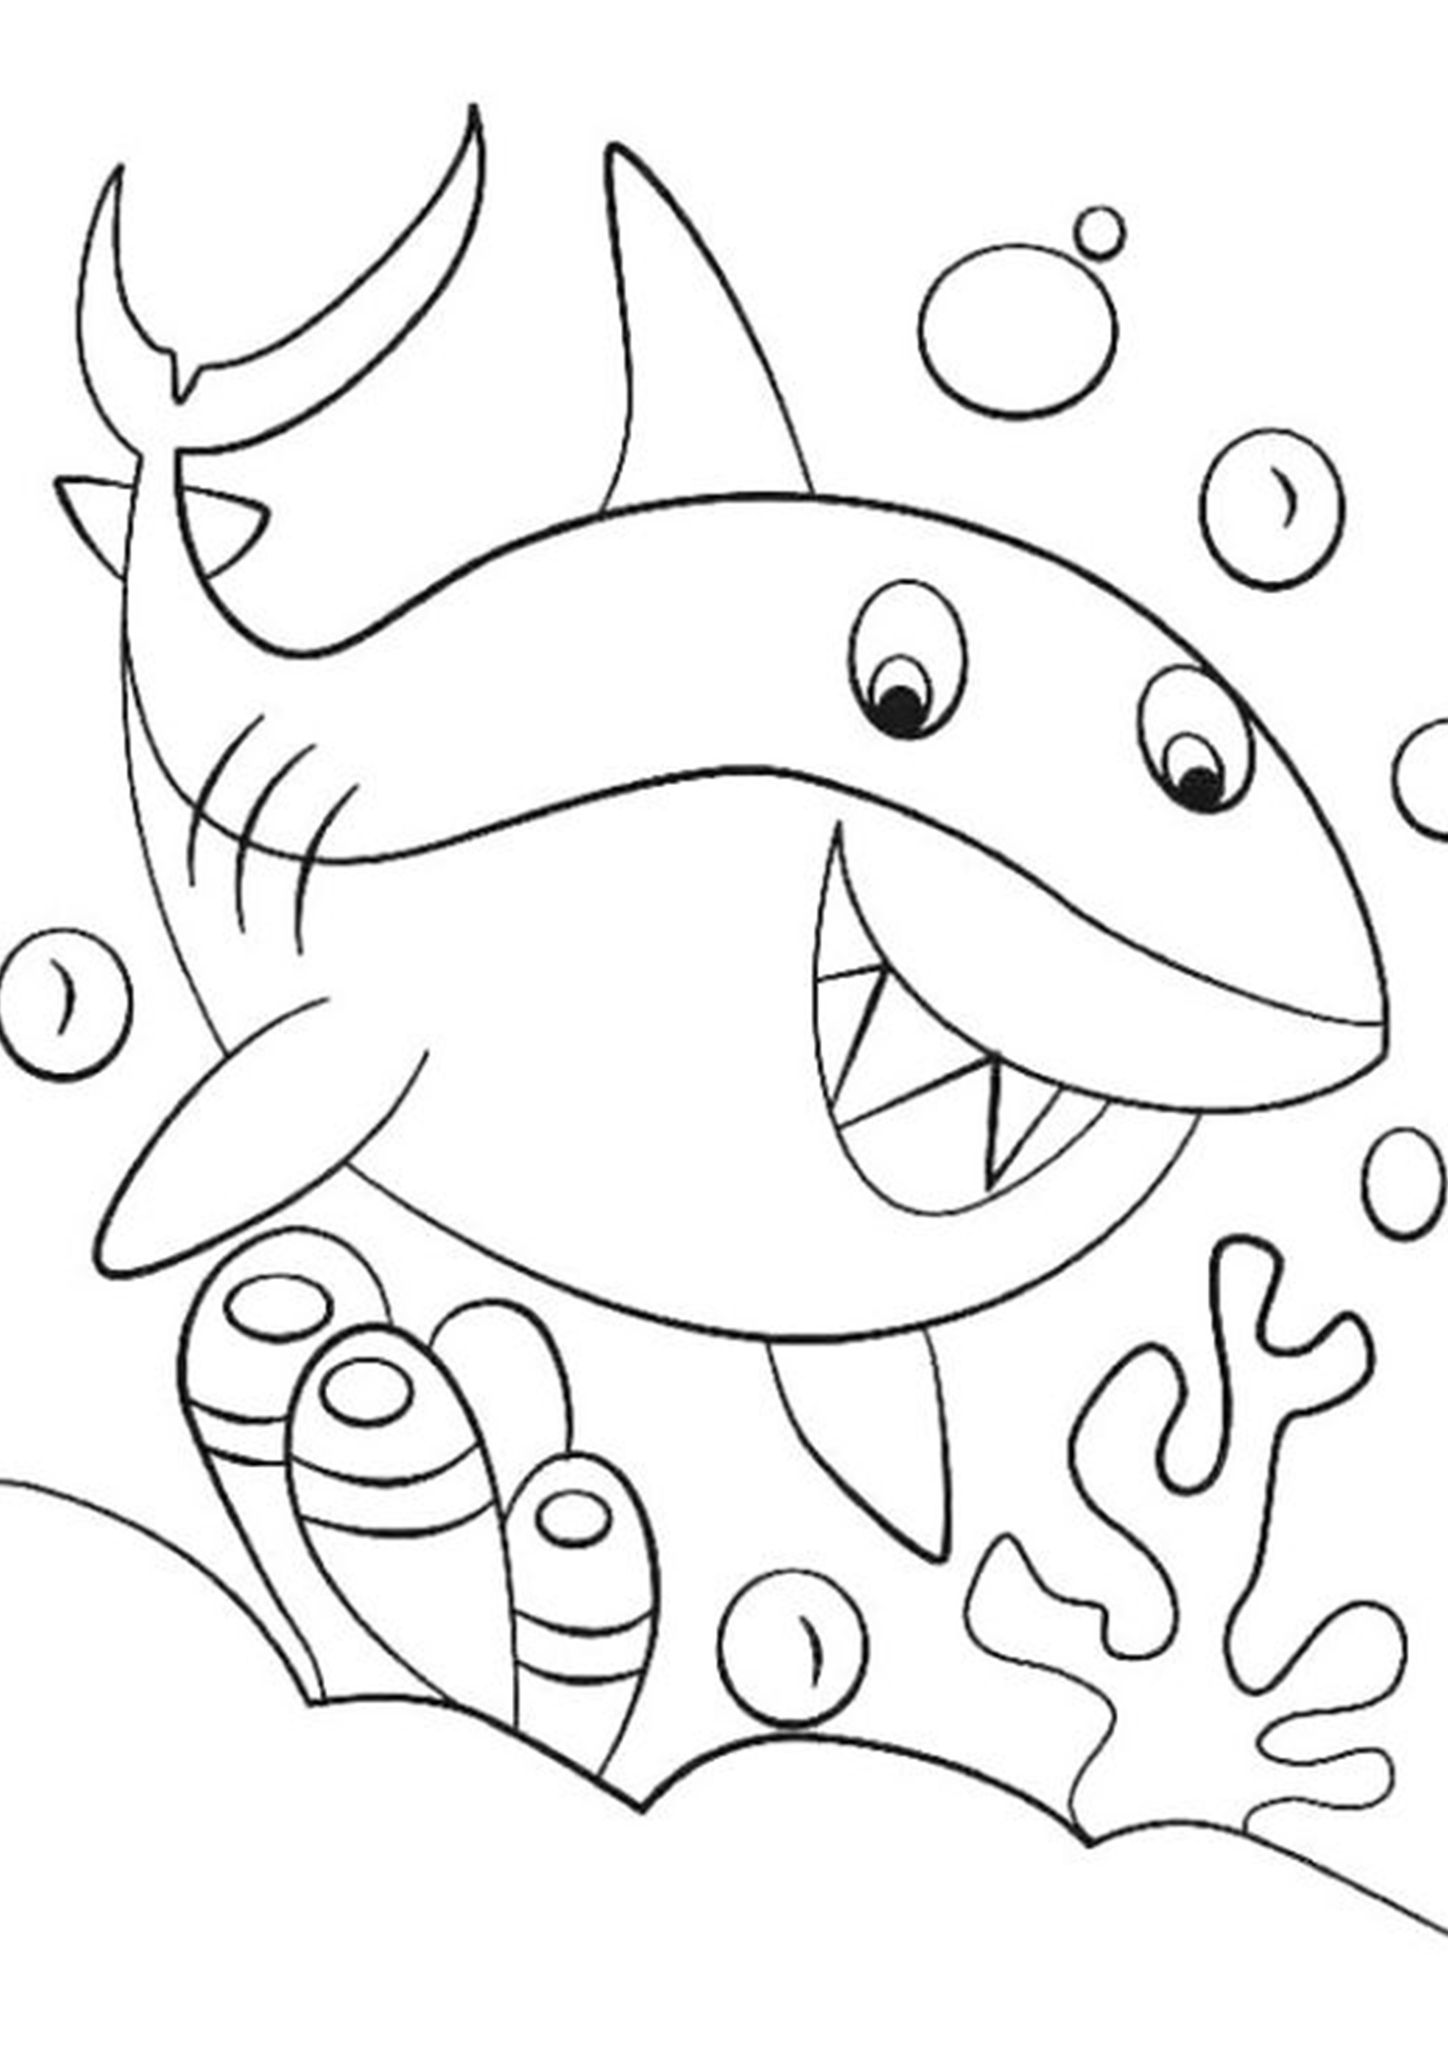 Free & Easy To Print Shark Coloring Pages in 2020 | Shark coloring pages, Baby  coloring pages, Coloring pages